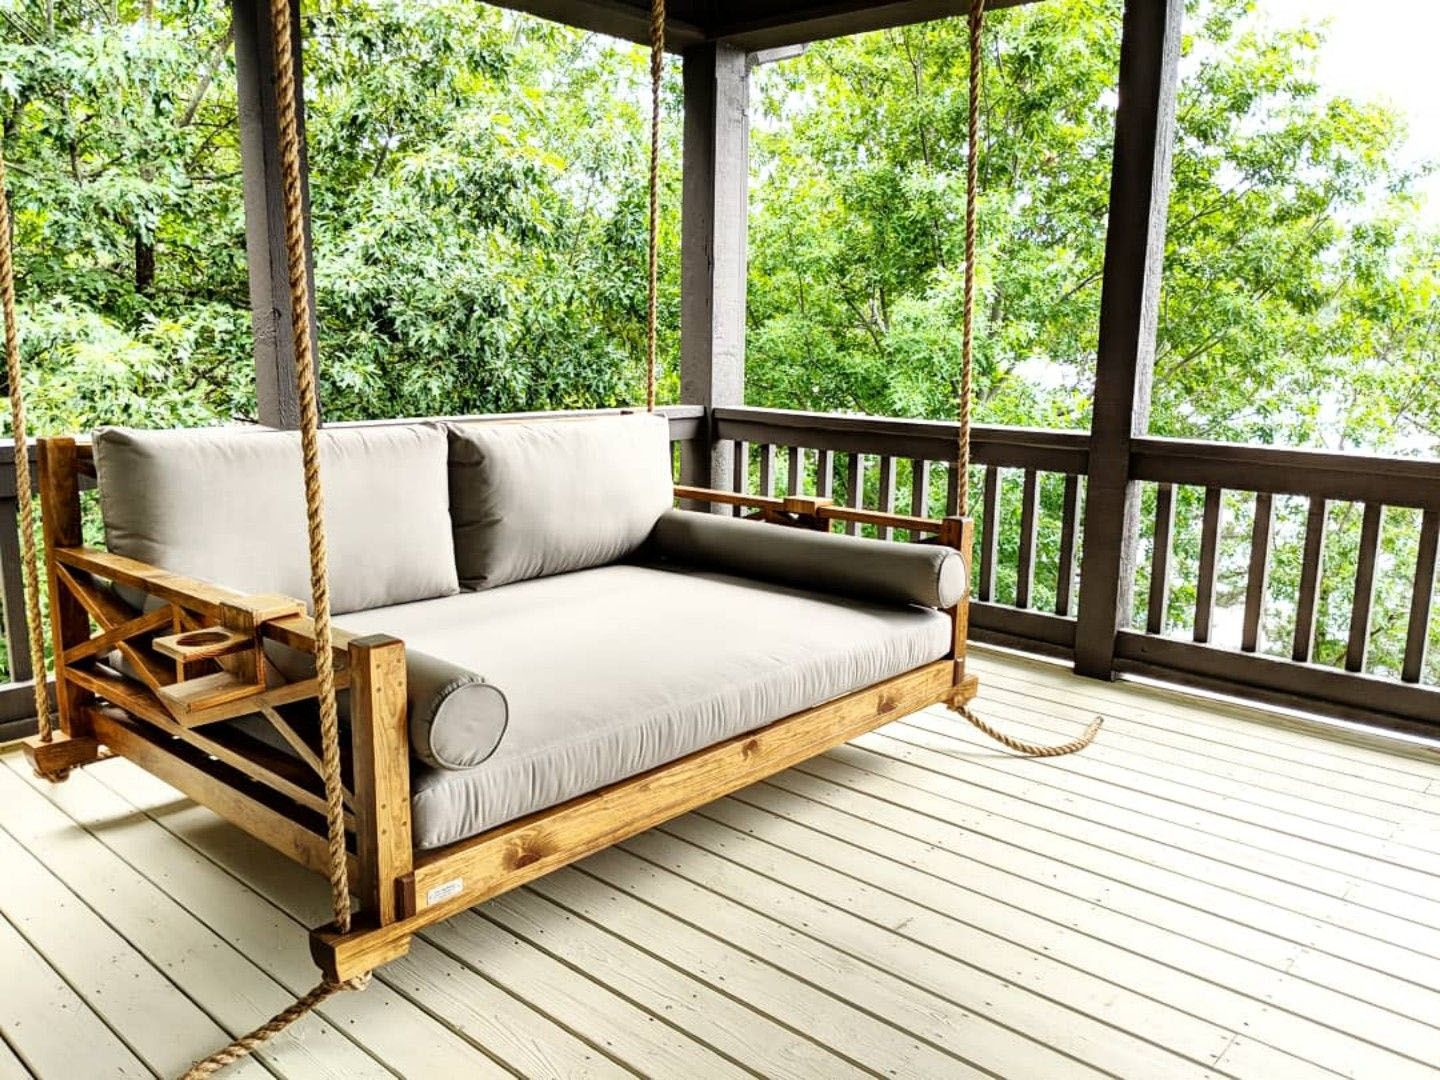 Free Diy Porch Swing Plans Ideas To Chill In Your Front Porch Porch Swing Bed Bed Swing Porch Swing